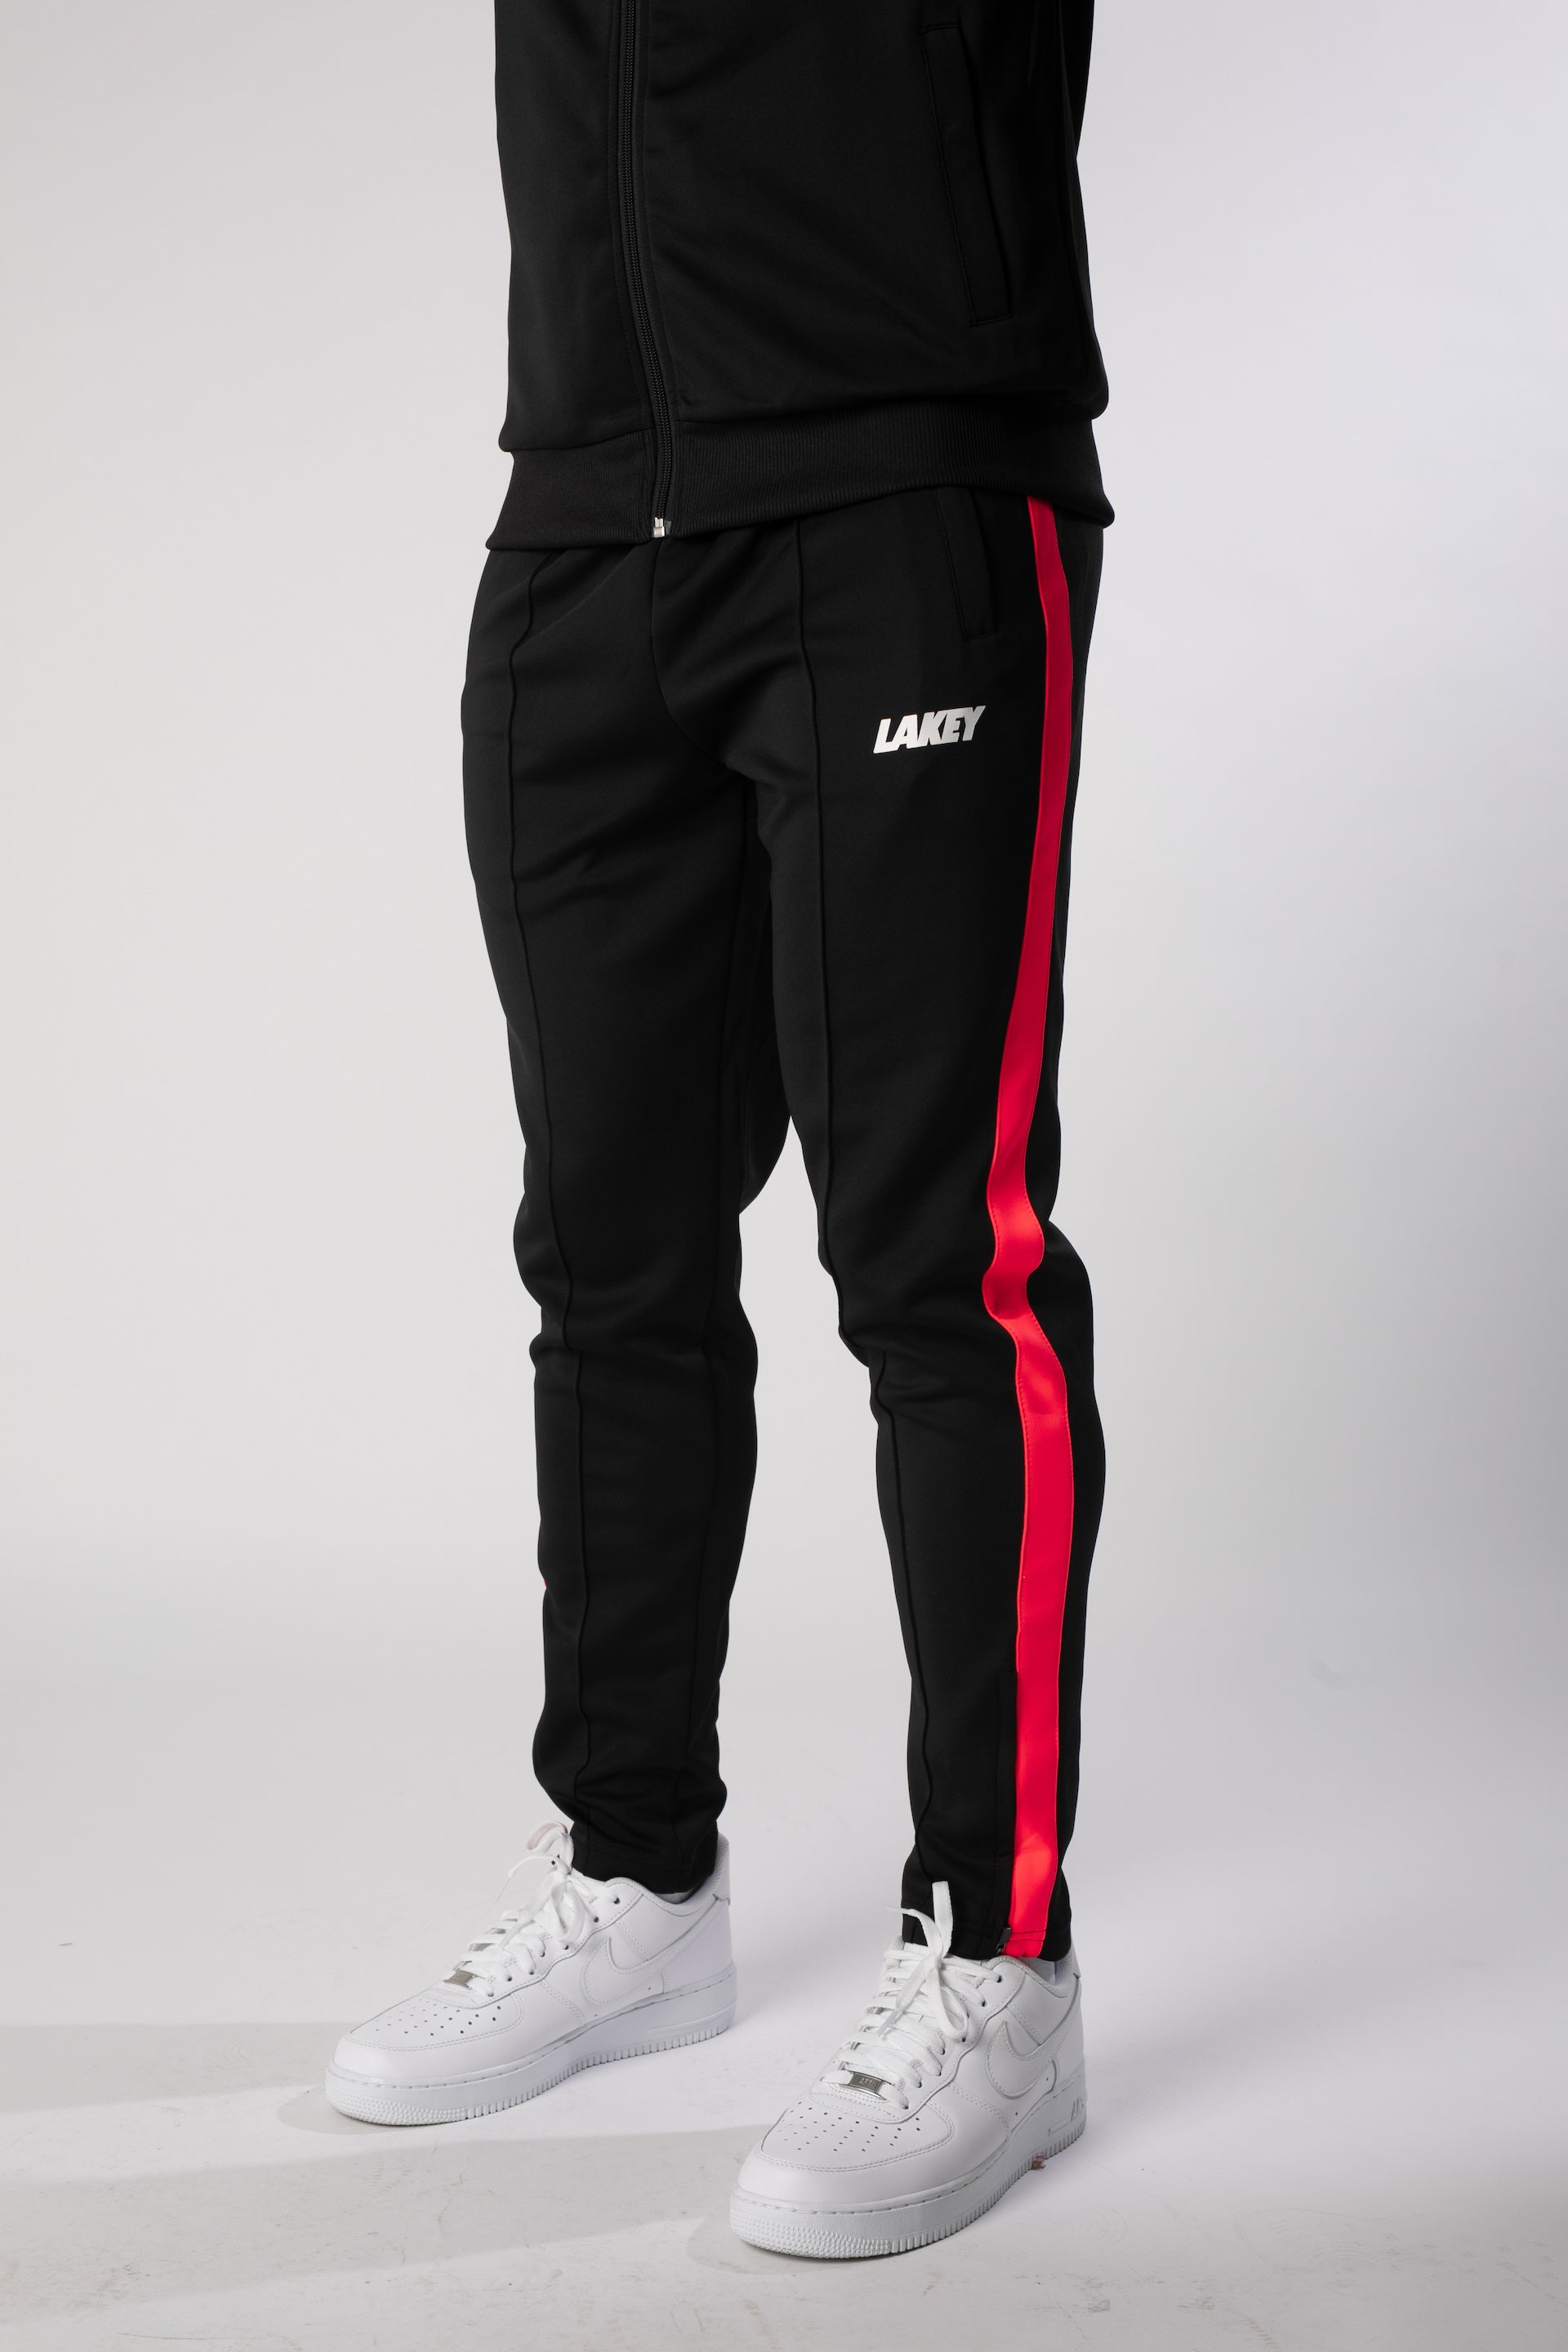 RETRO MOD TRACKPANTS - INFRARED - Lakey